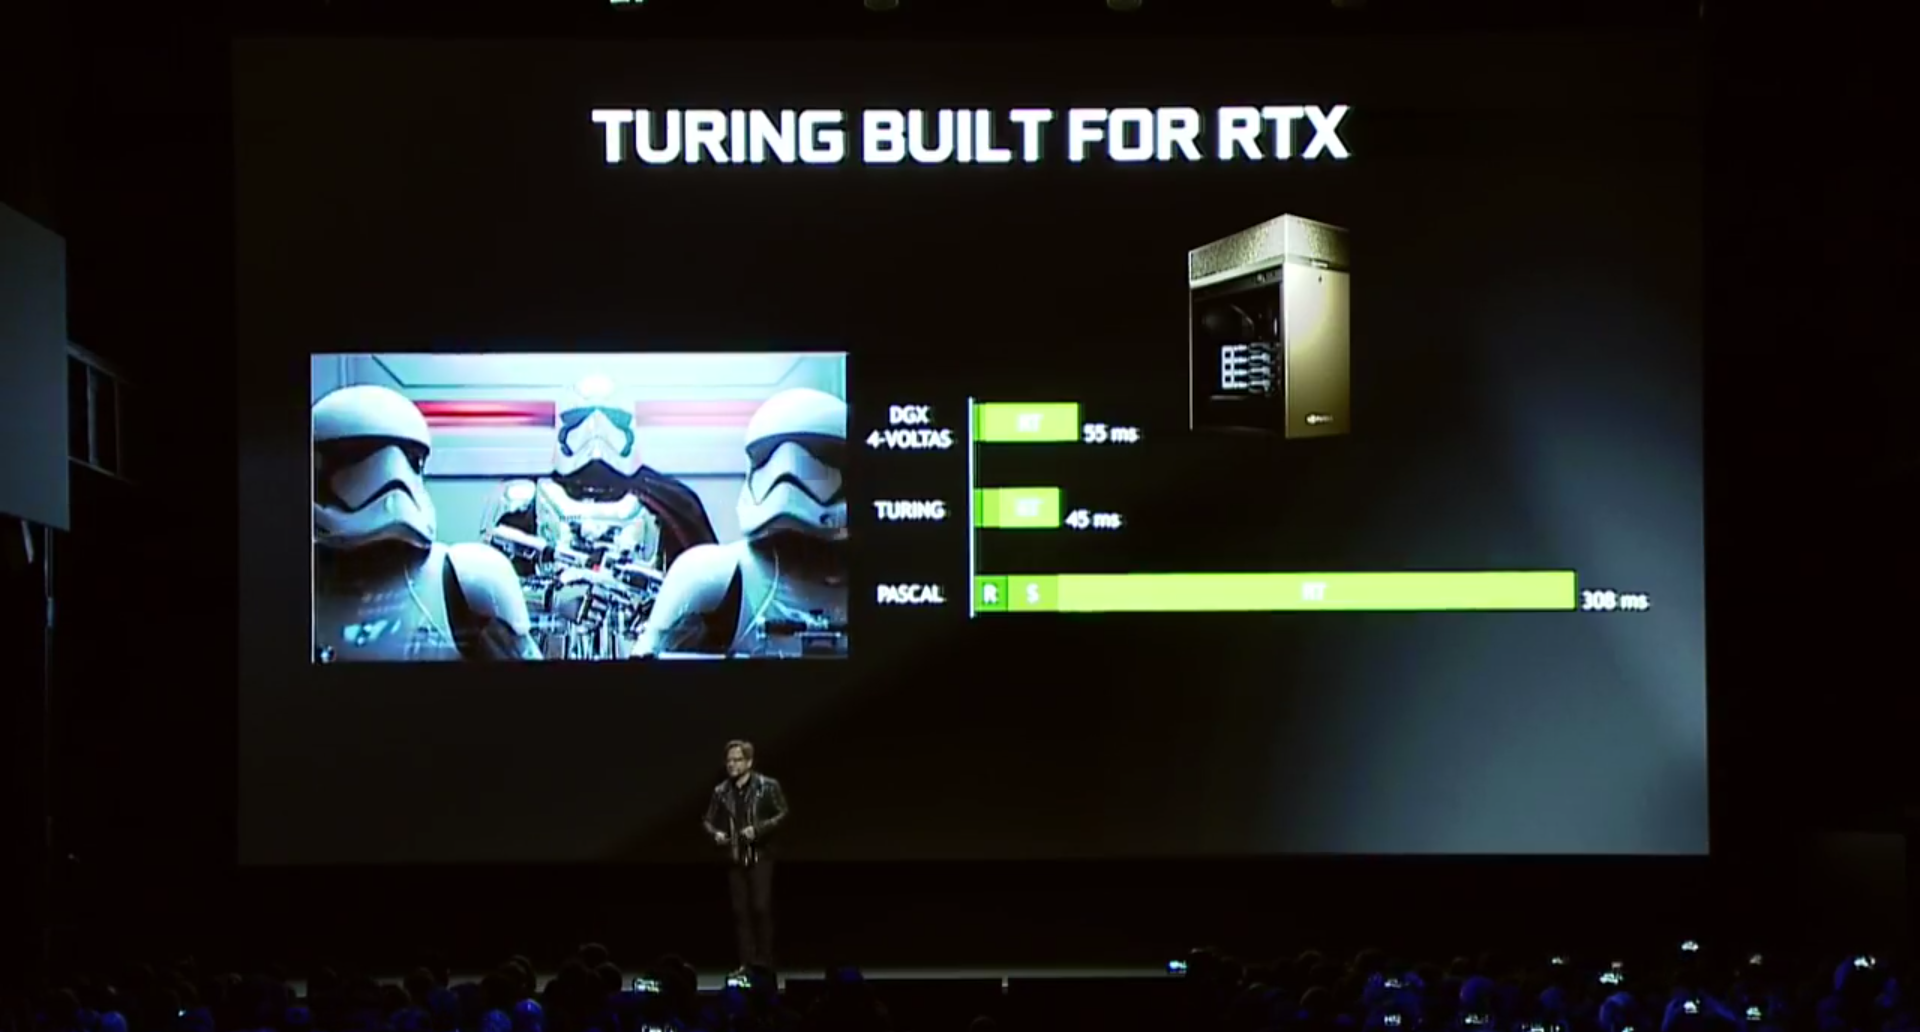 NVIDIA Just Announced The GeForce RTX 20 Series Featuring New Turing Architecture